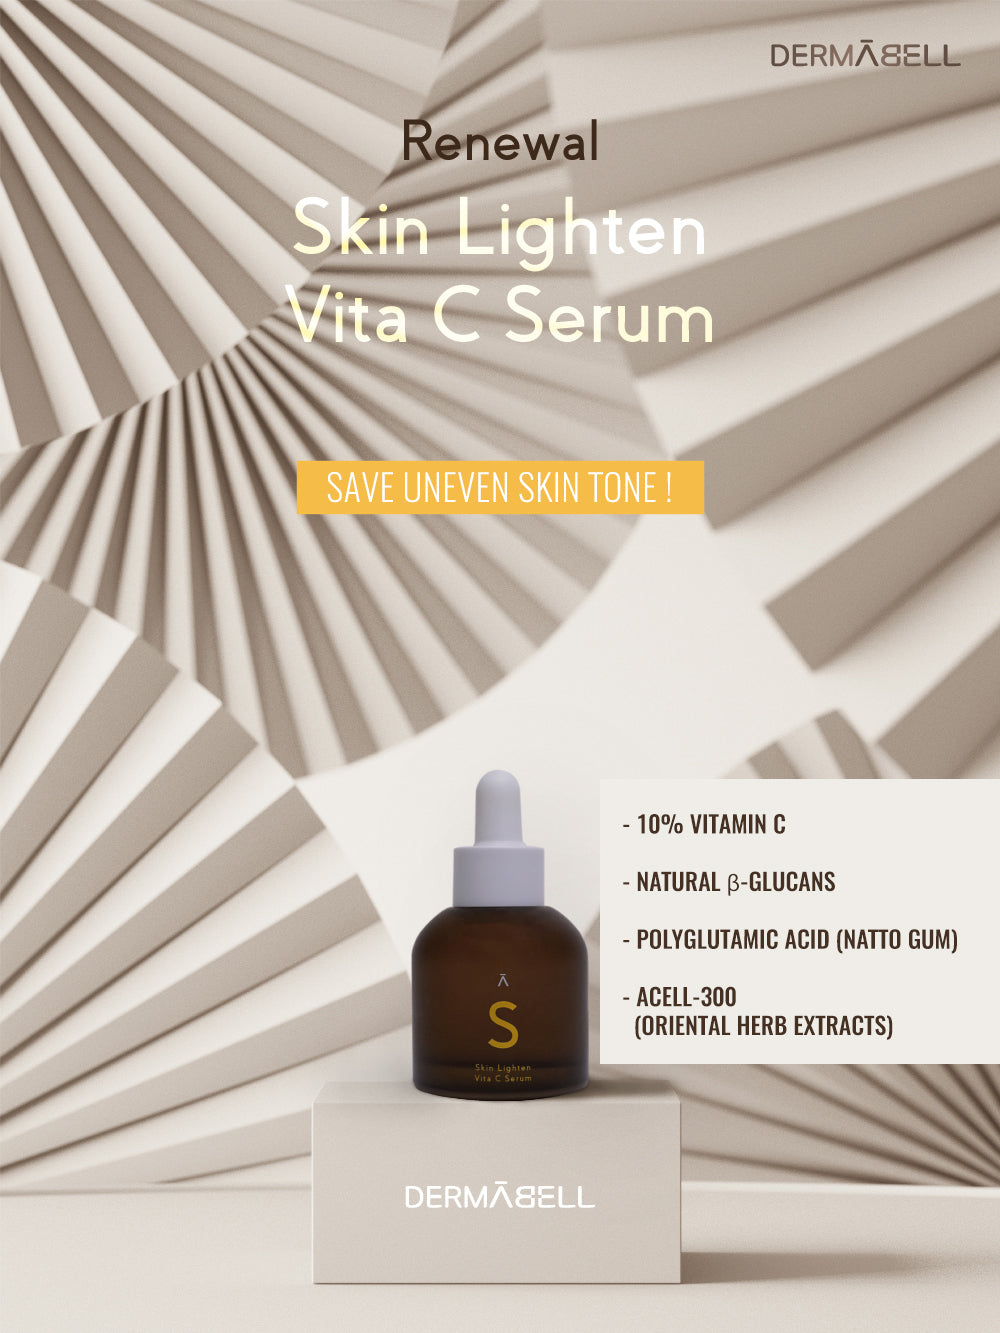 Skin Lighten Vita C Serum sos serum by DERMABELL PRO